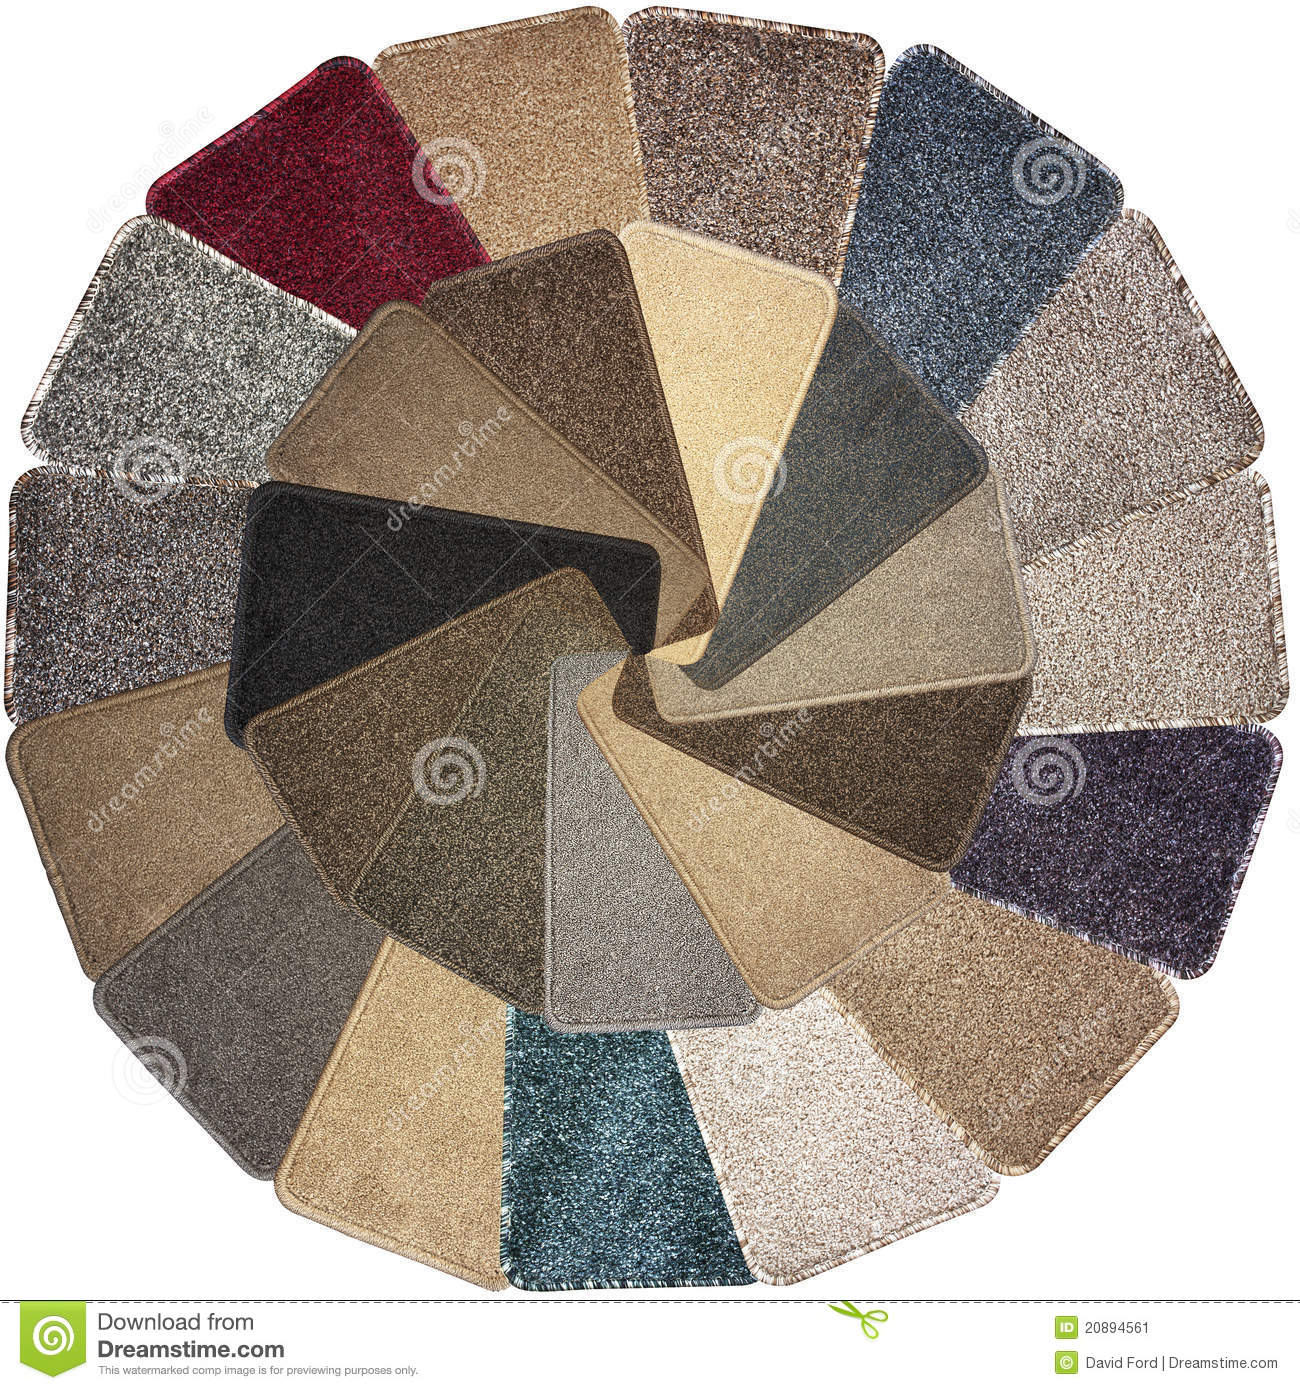 Carpet Samples stock image. Image of covering, rough